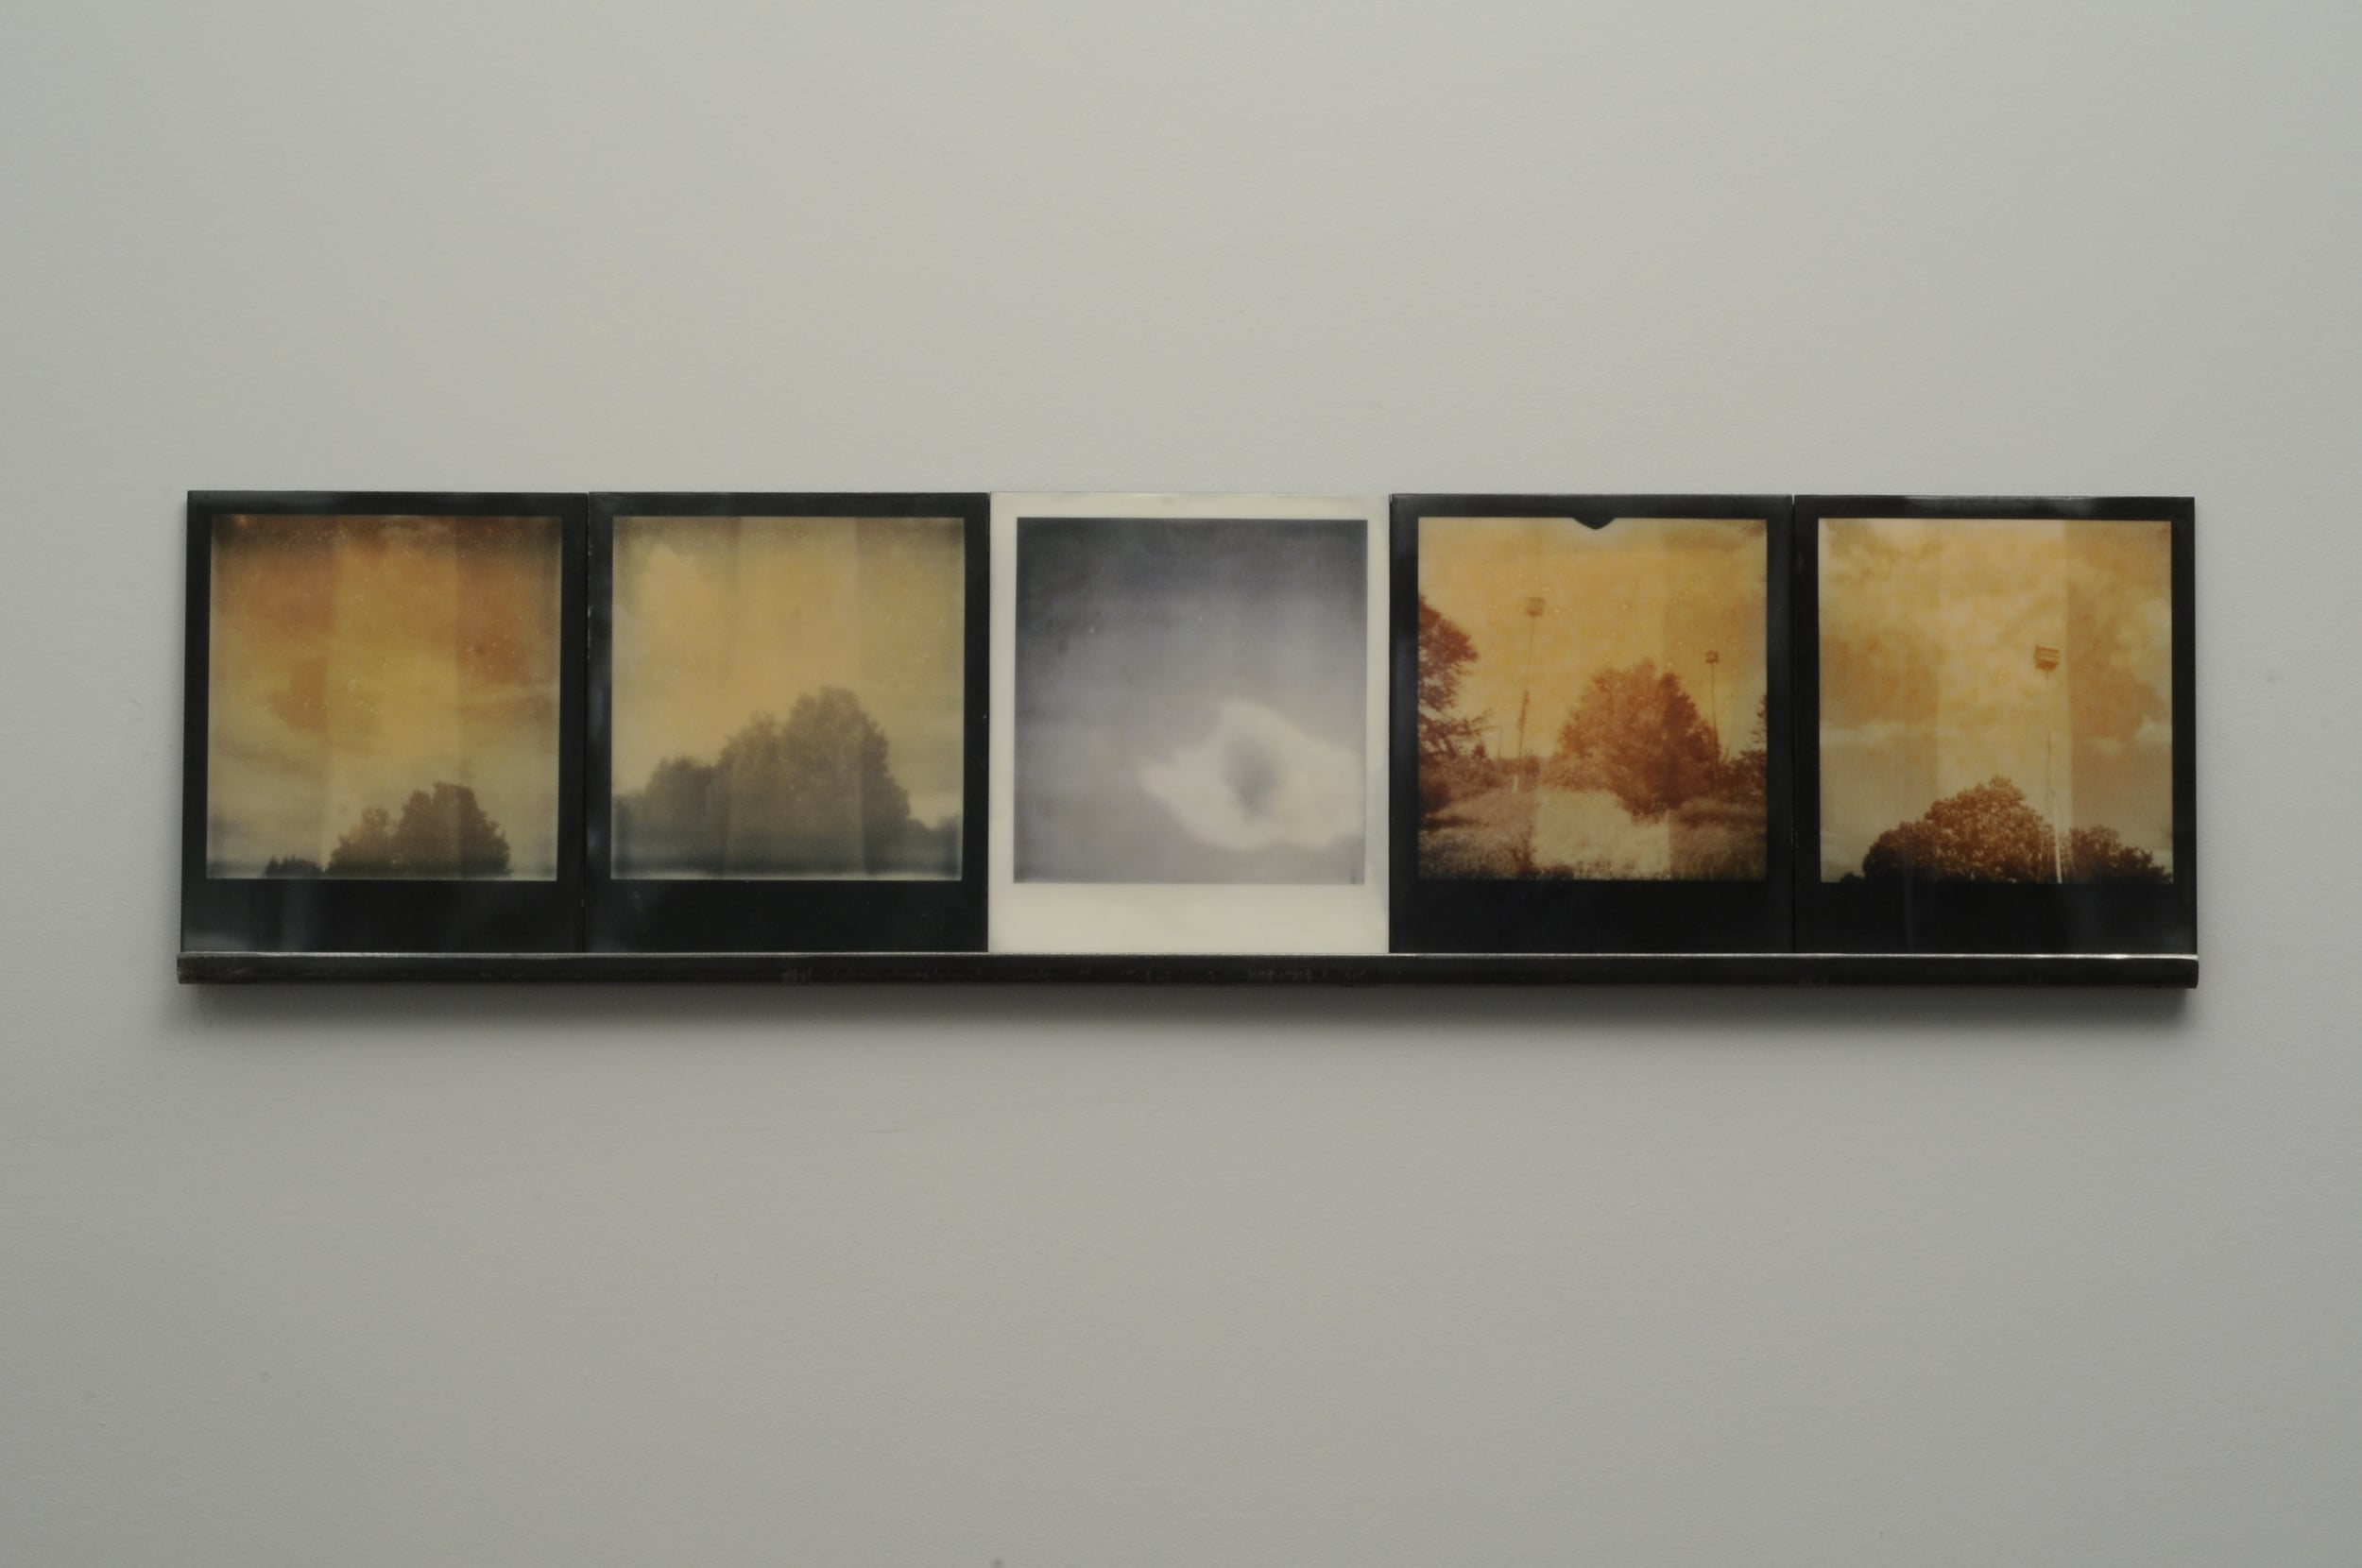 """Cumulonimbus  , 2015, pigment prints on cotton and panel with encaustic medium and steel shelf, 8.5"""" x 35.25"""" x 1"""" variable edition of 2 and 1 artist proof"""